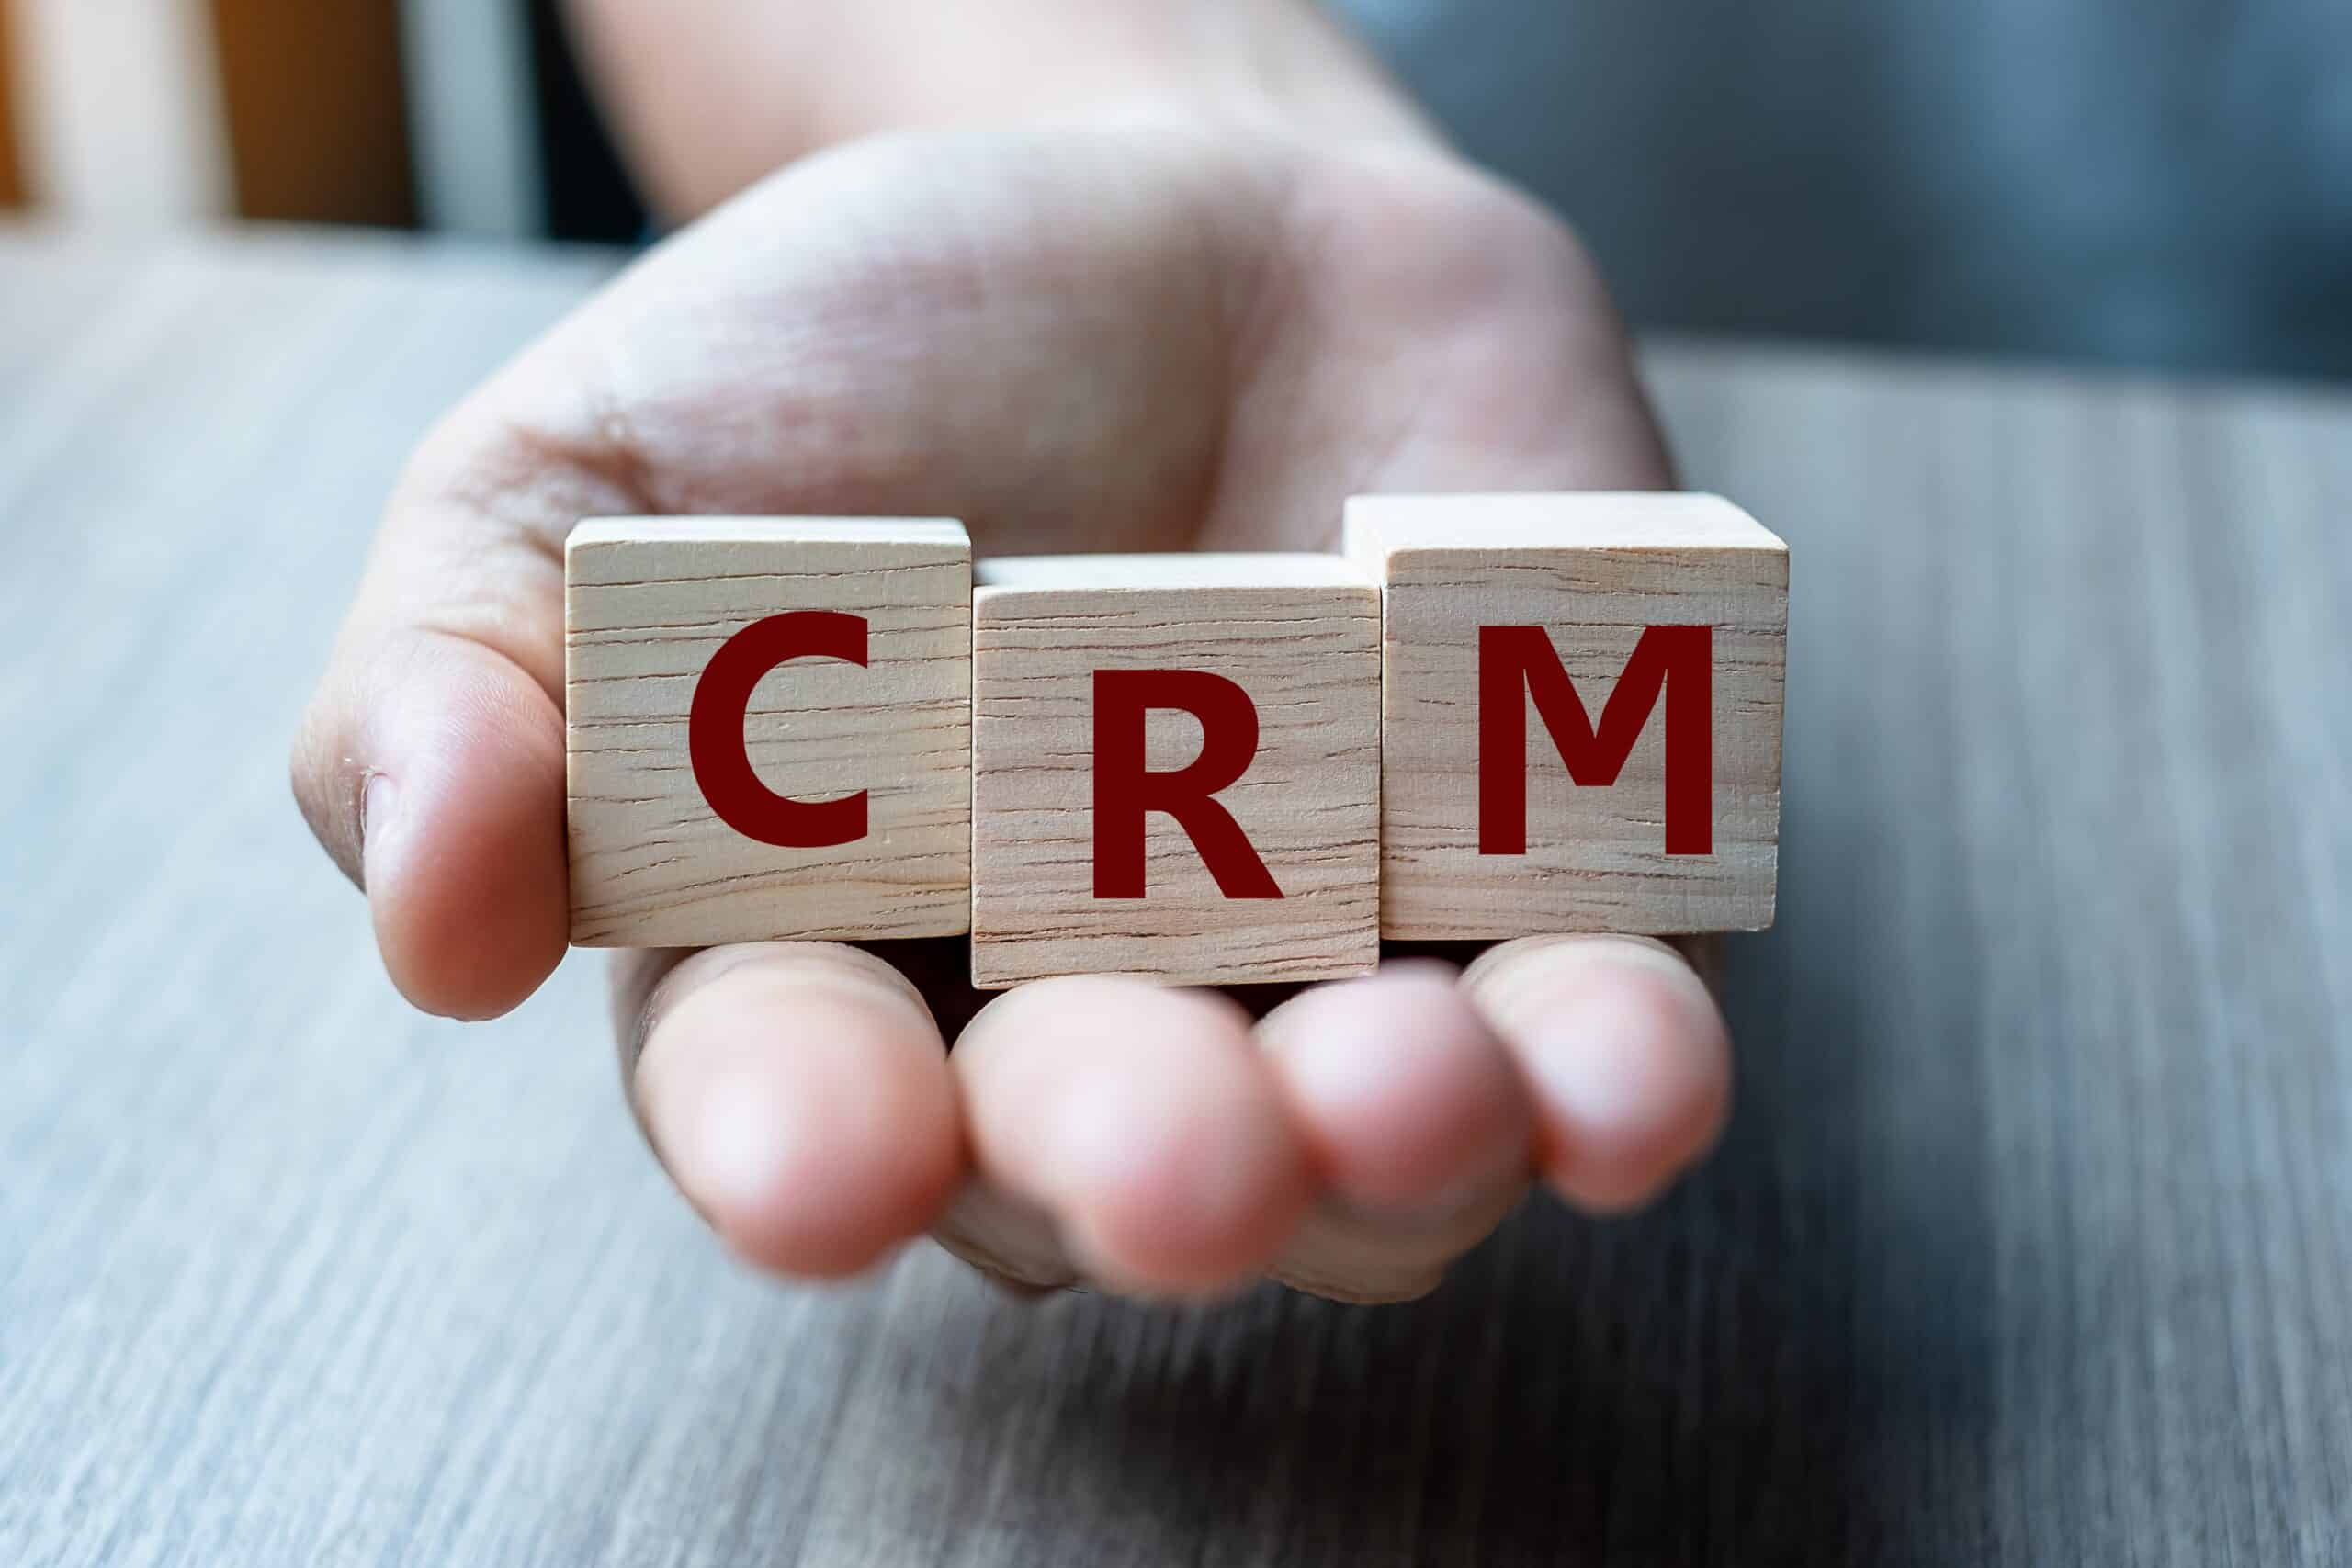 Sap vs Salesforce, Best CRM, Which is the better CRM, CRM software, CRM solution, CRM, CRM review and comparisons